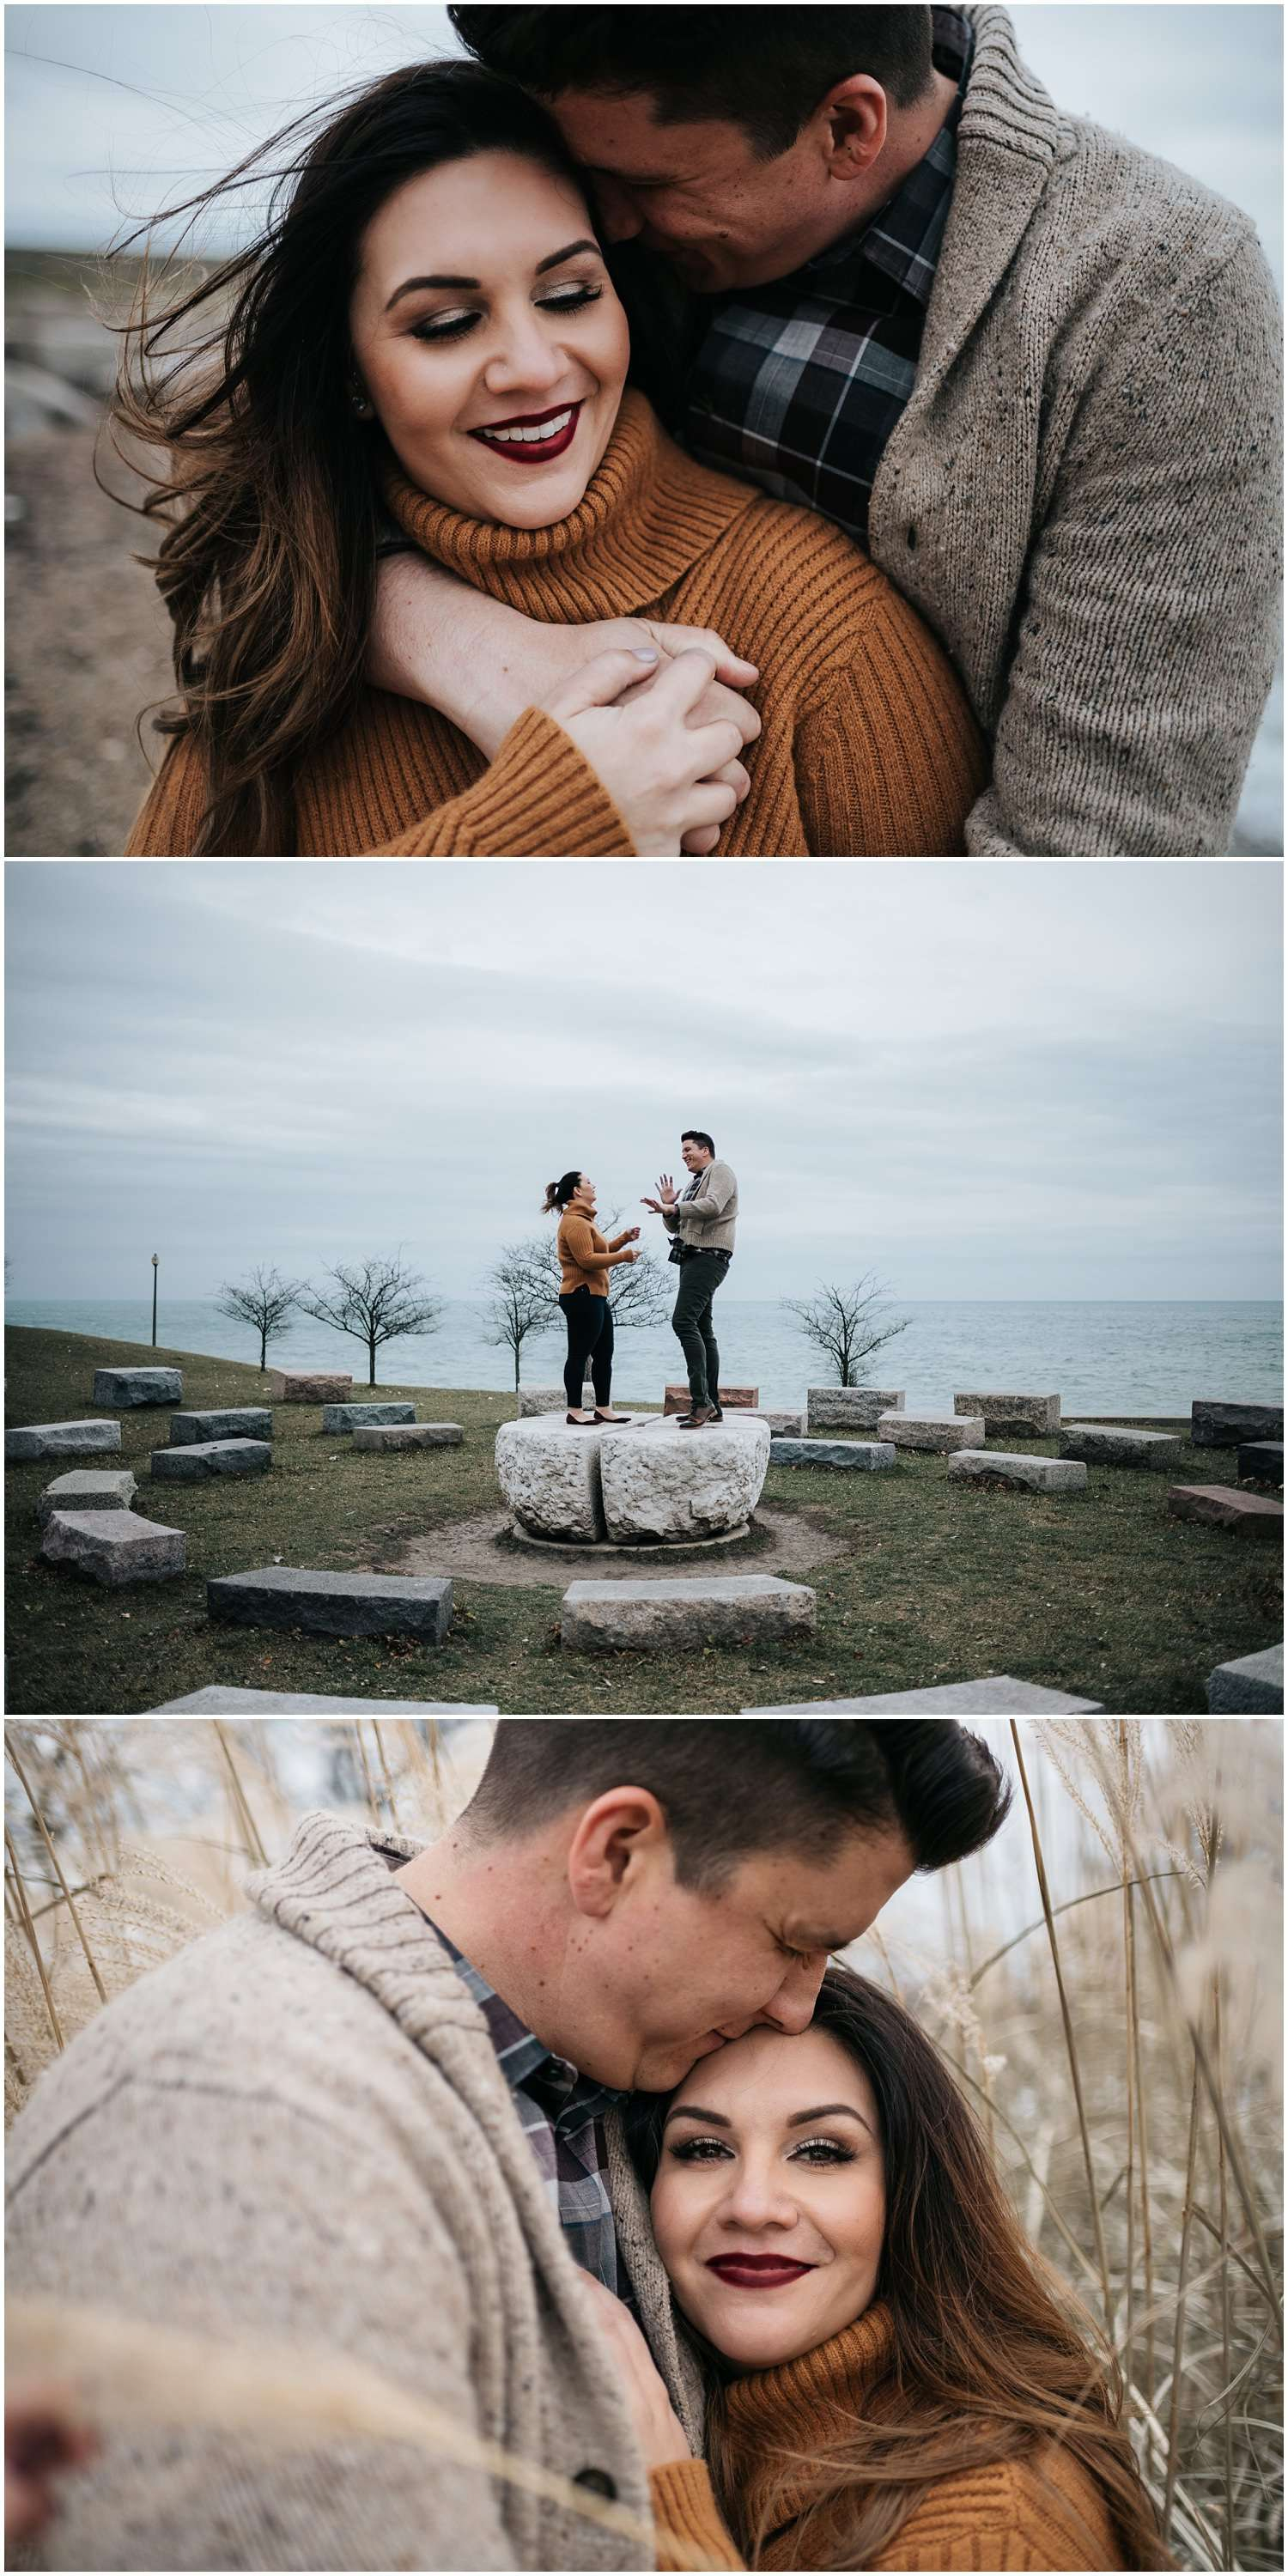 chicago, photographer, photography, couples session, couple, engagement, session, illinois, engagement session, lifestyle, documentary, photojournalistic, photojournalism, natural, candid, wisconsin, utah, michigan, colorado, chicagoland, portrait, unposed, elopement, elope, elopement photographer, chicago elopement, illinois elopement, anniversary, windy chicago lakefront couple session